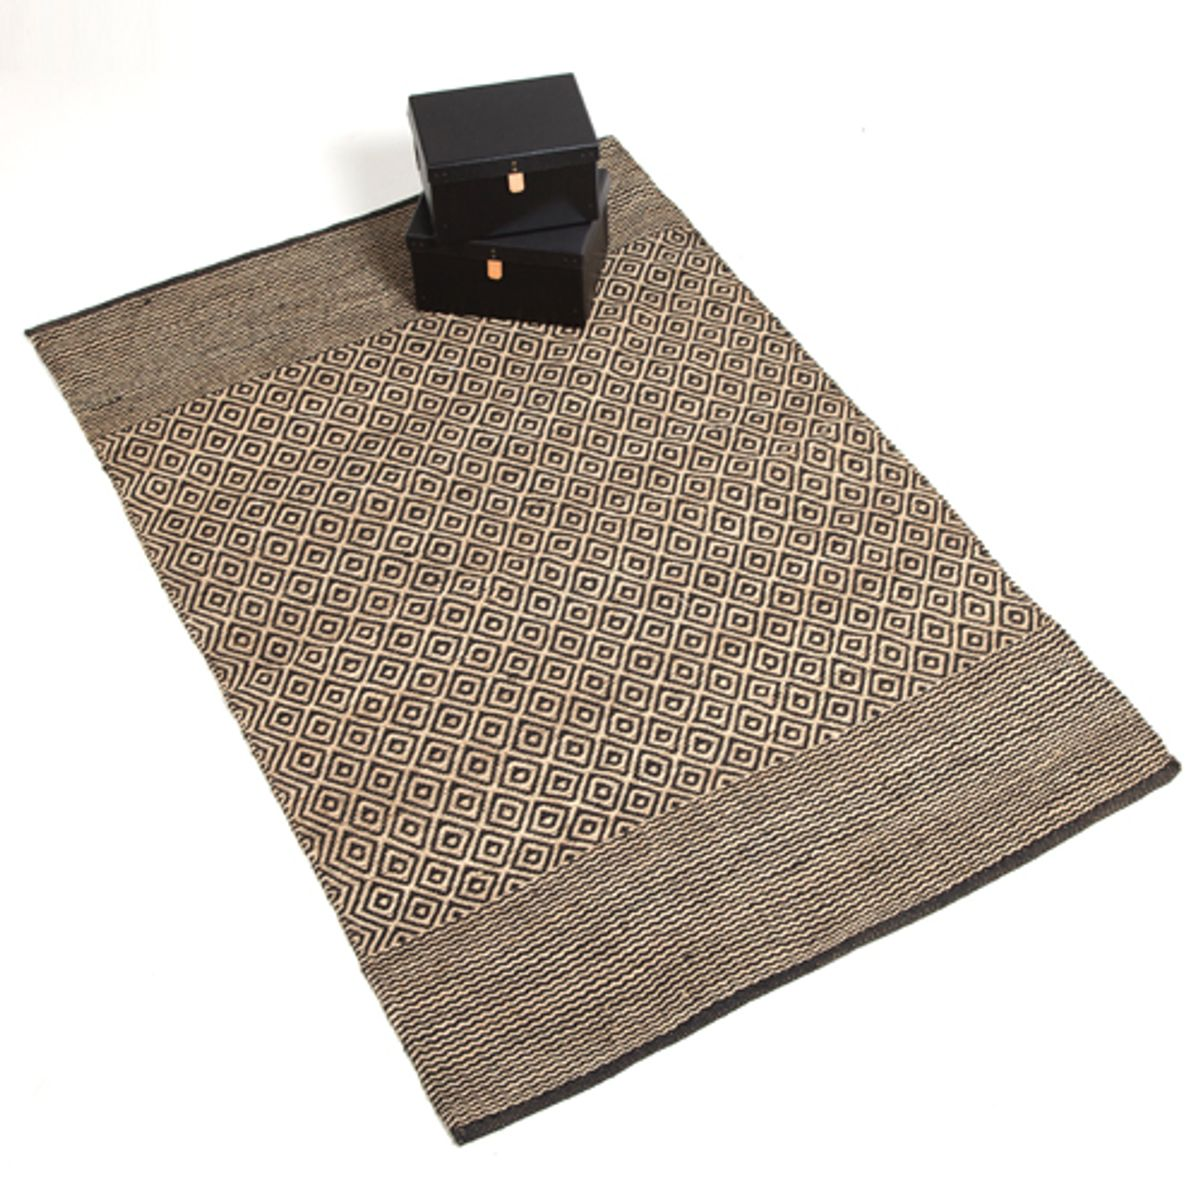 tapis en jute naturel tiss main motifs losange noir decoclico. Black Bedroom Furniture Sets. Home Design Ideas